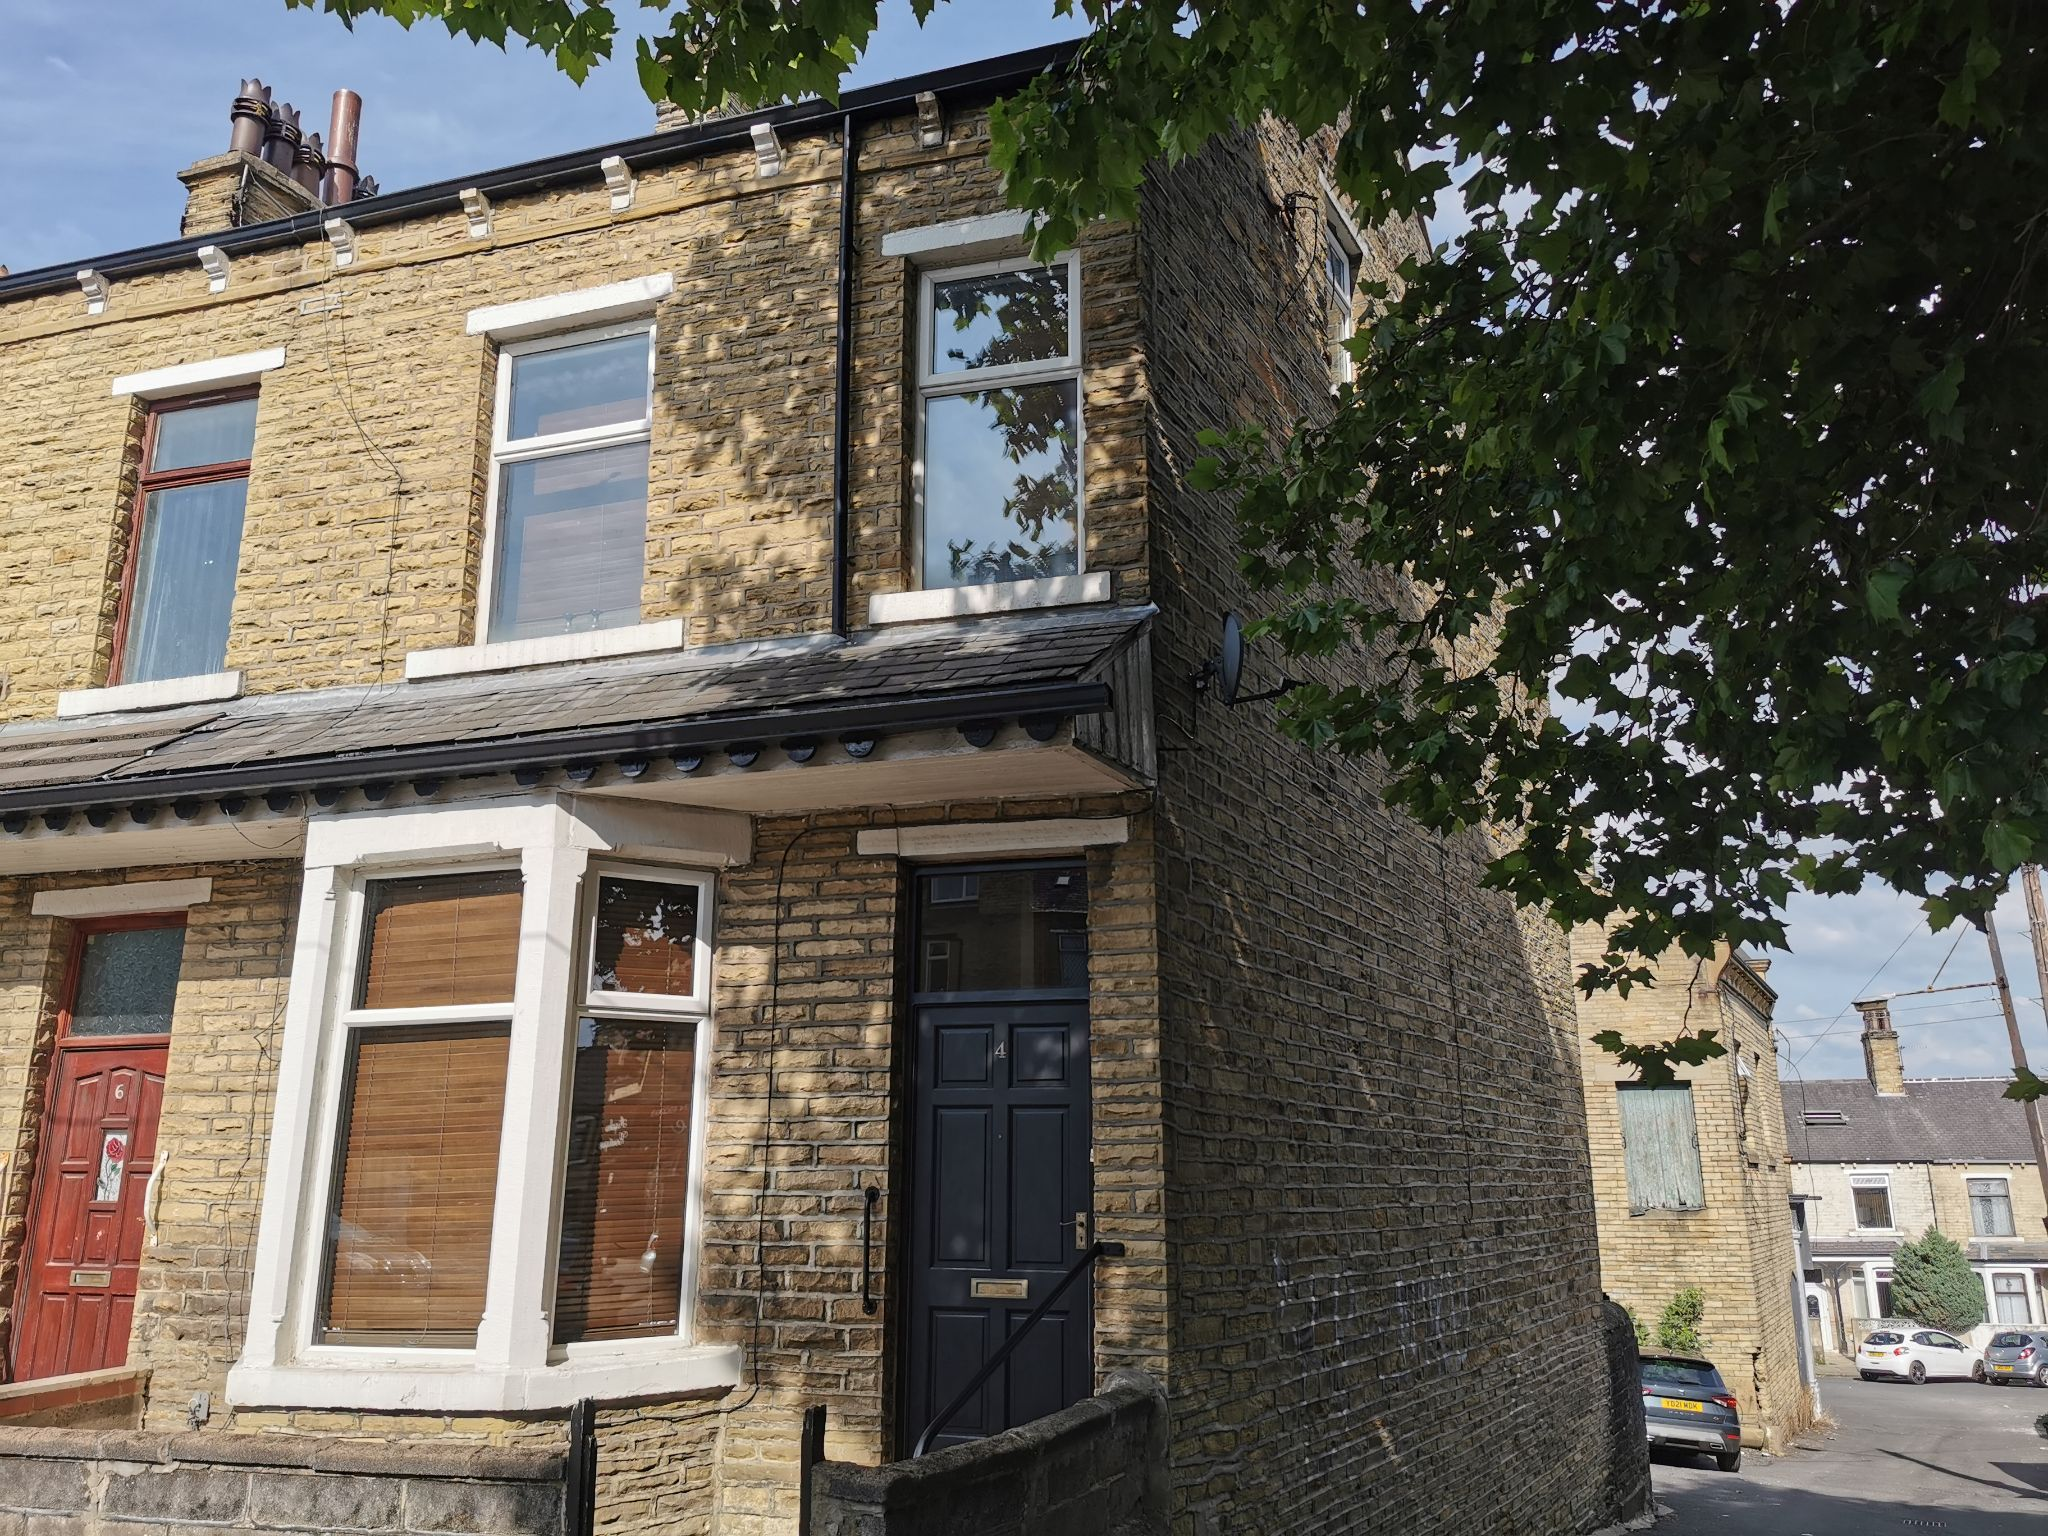 4 bedroom end terraced house For Sale in Bradford - Photograph 1.